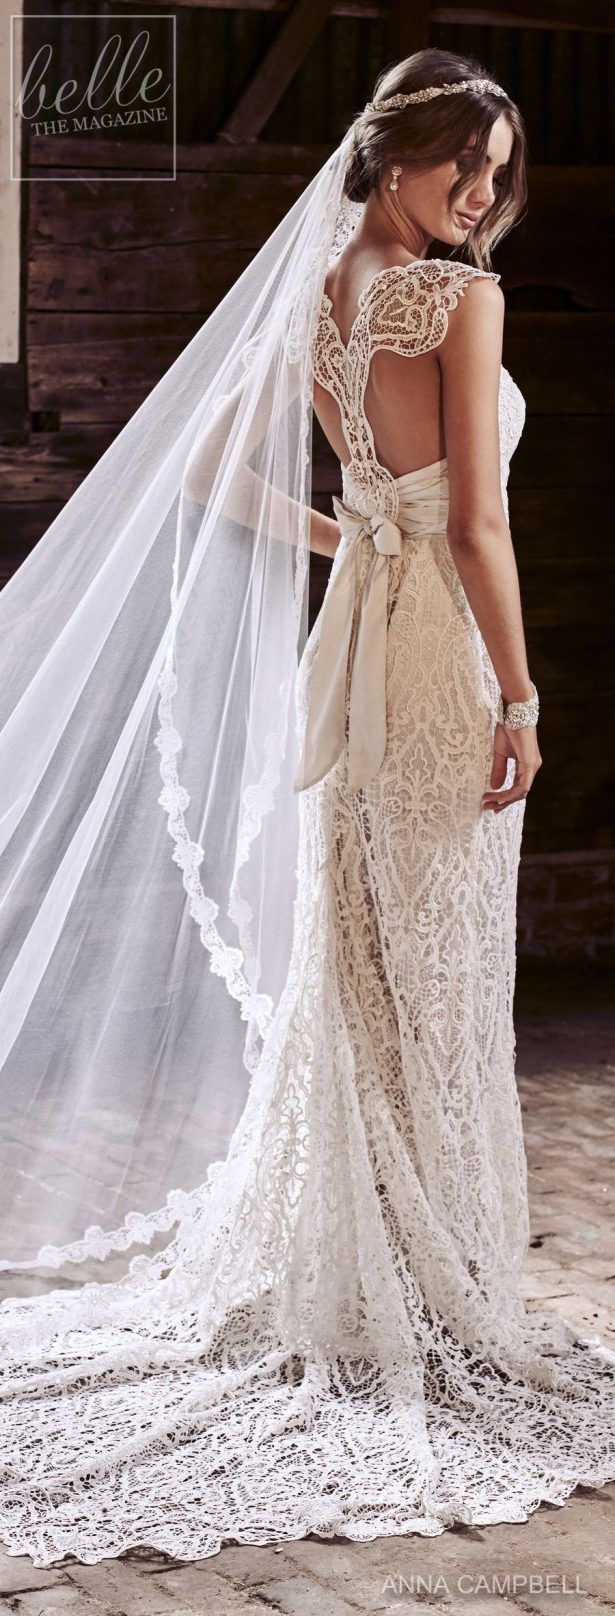 Wedding Dress by Anna Campbell Eternal Heart collection 2018